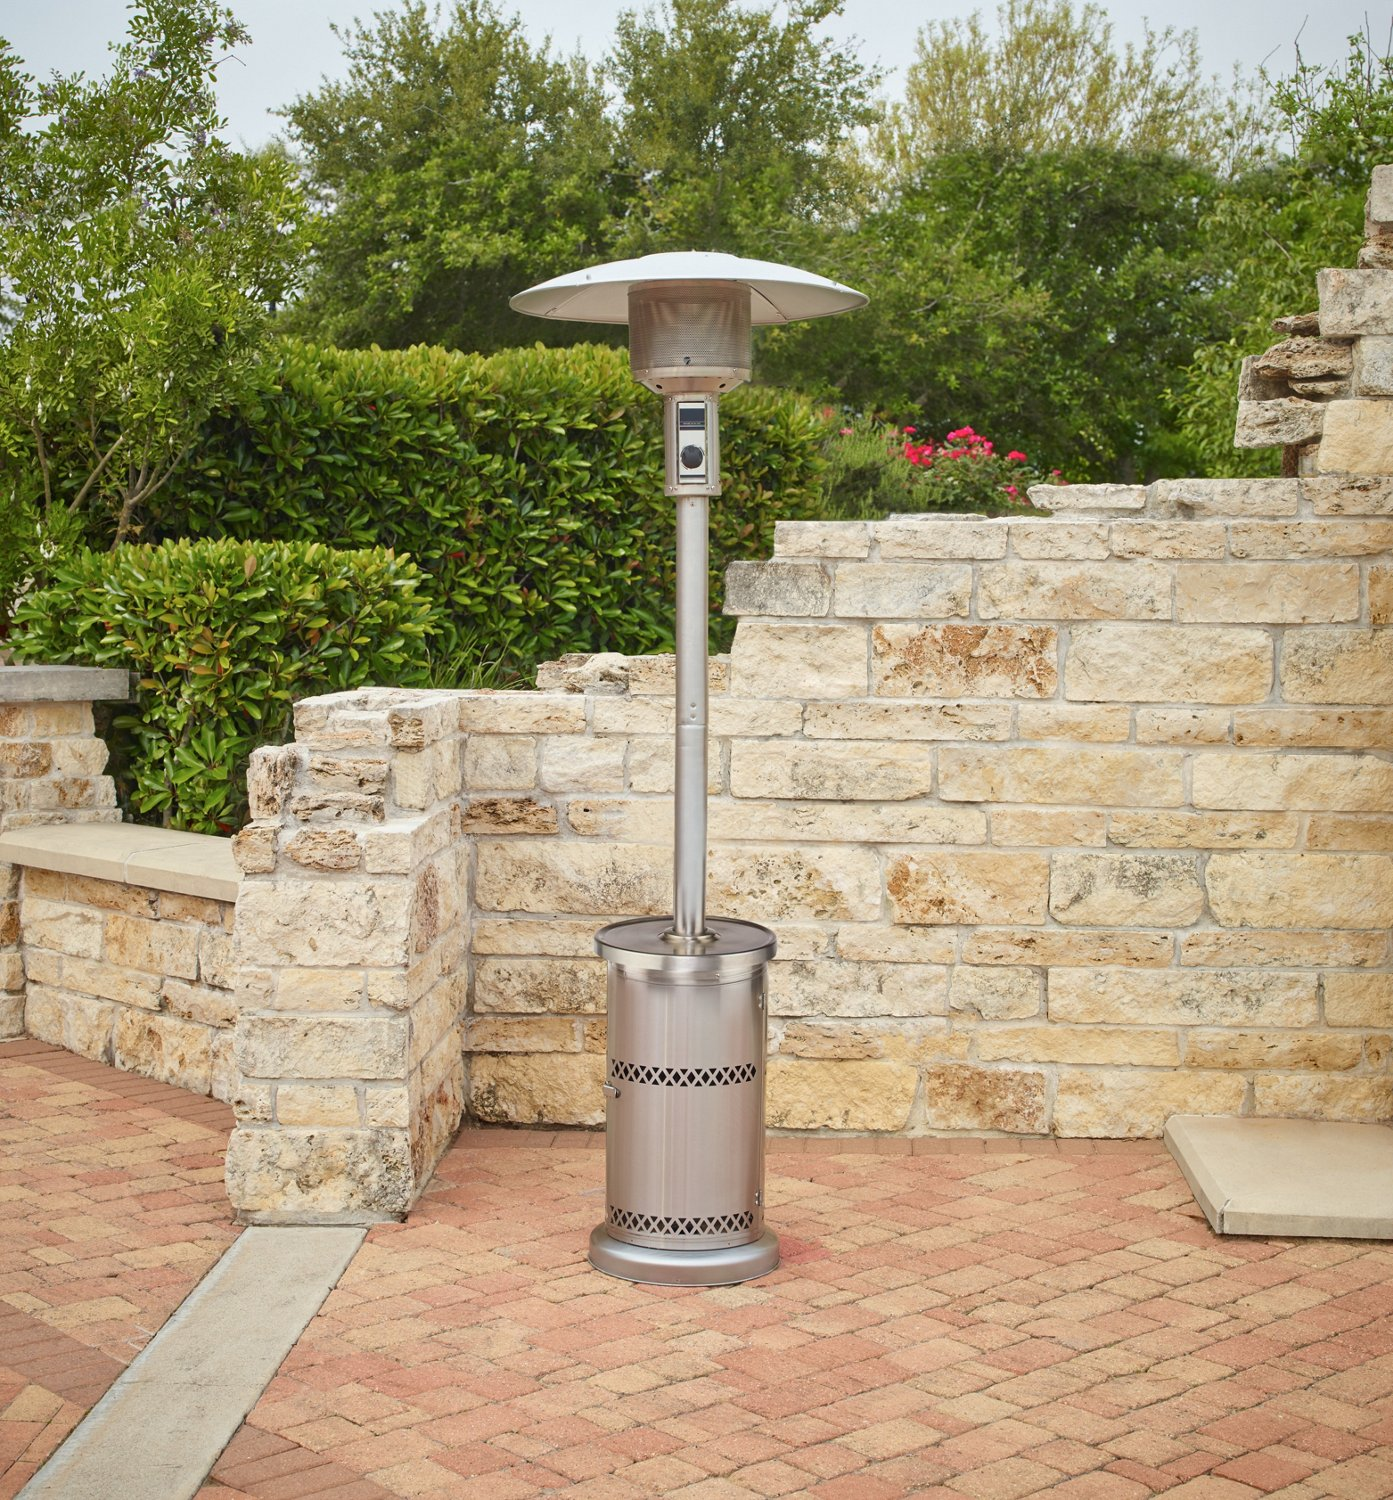 Patio Heater Pyramid Curve Patio Heater Affordable Outdoor Kitchens